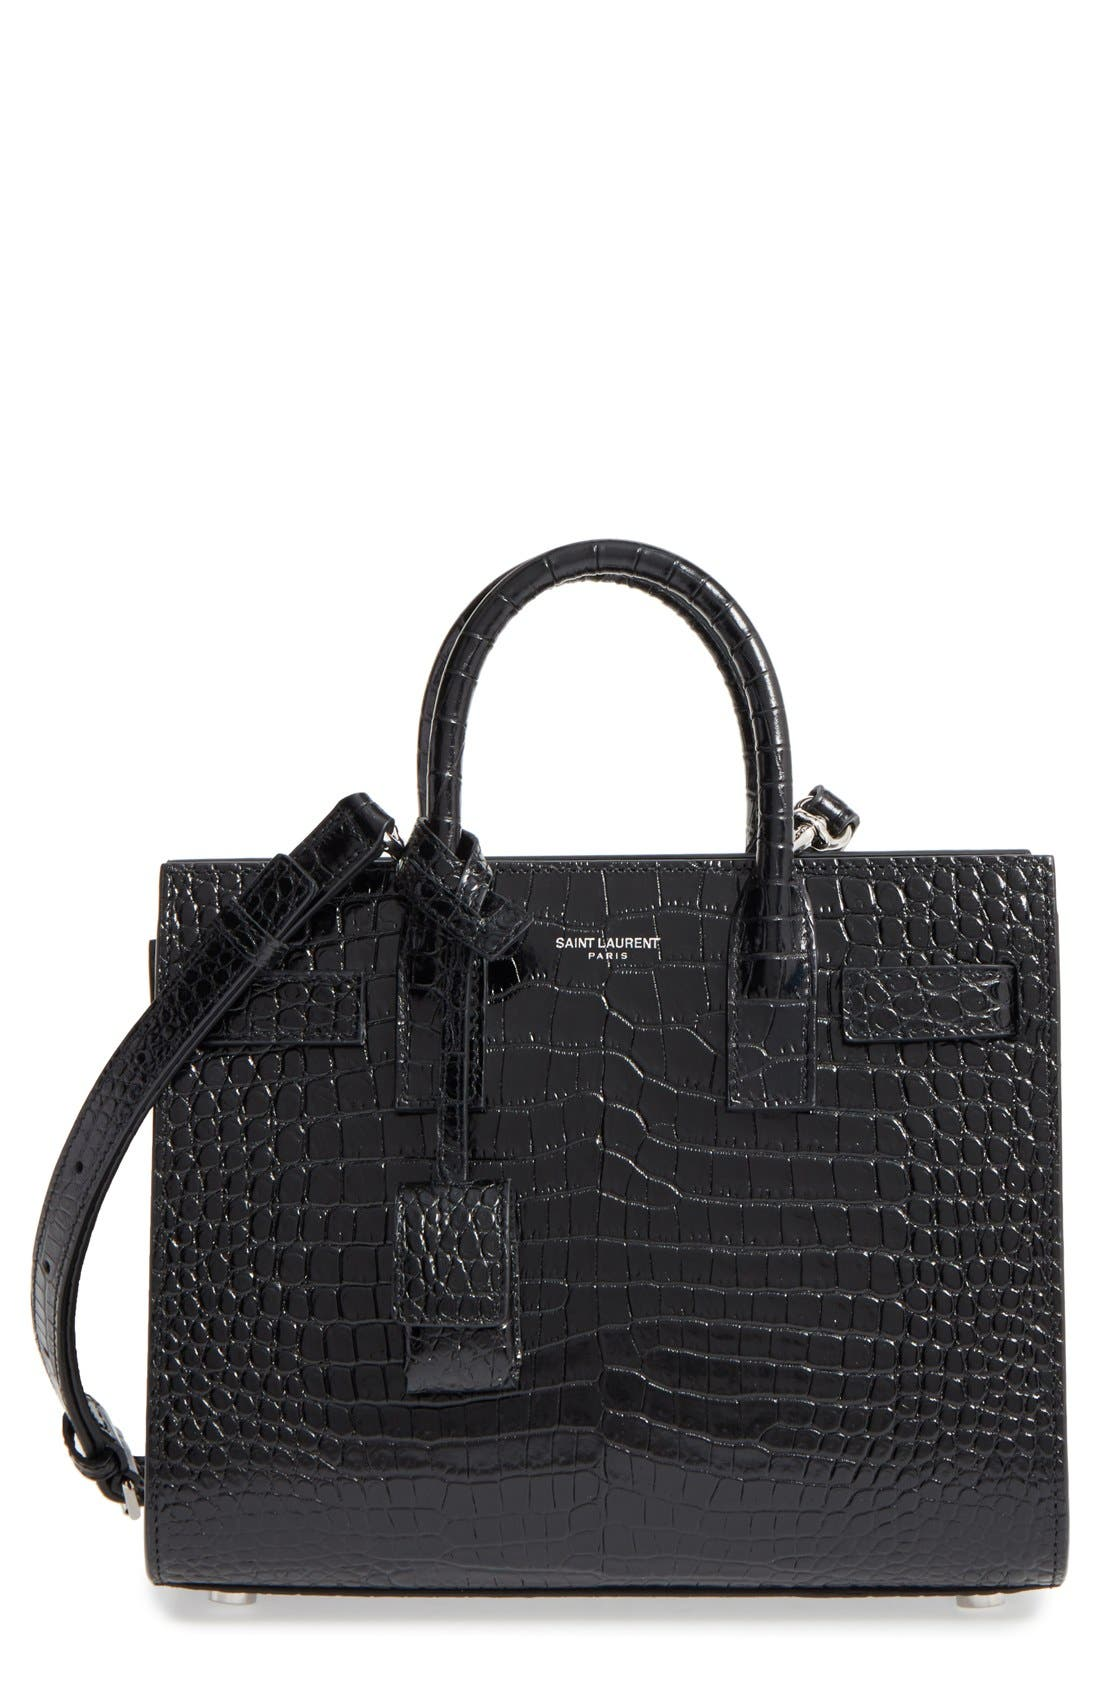 SAINT LAURENT Nano Sac de Jour Croc Embossed